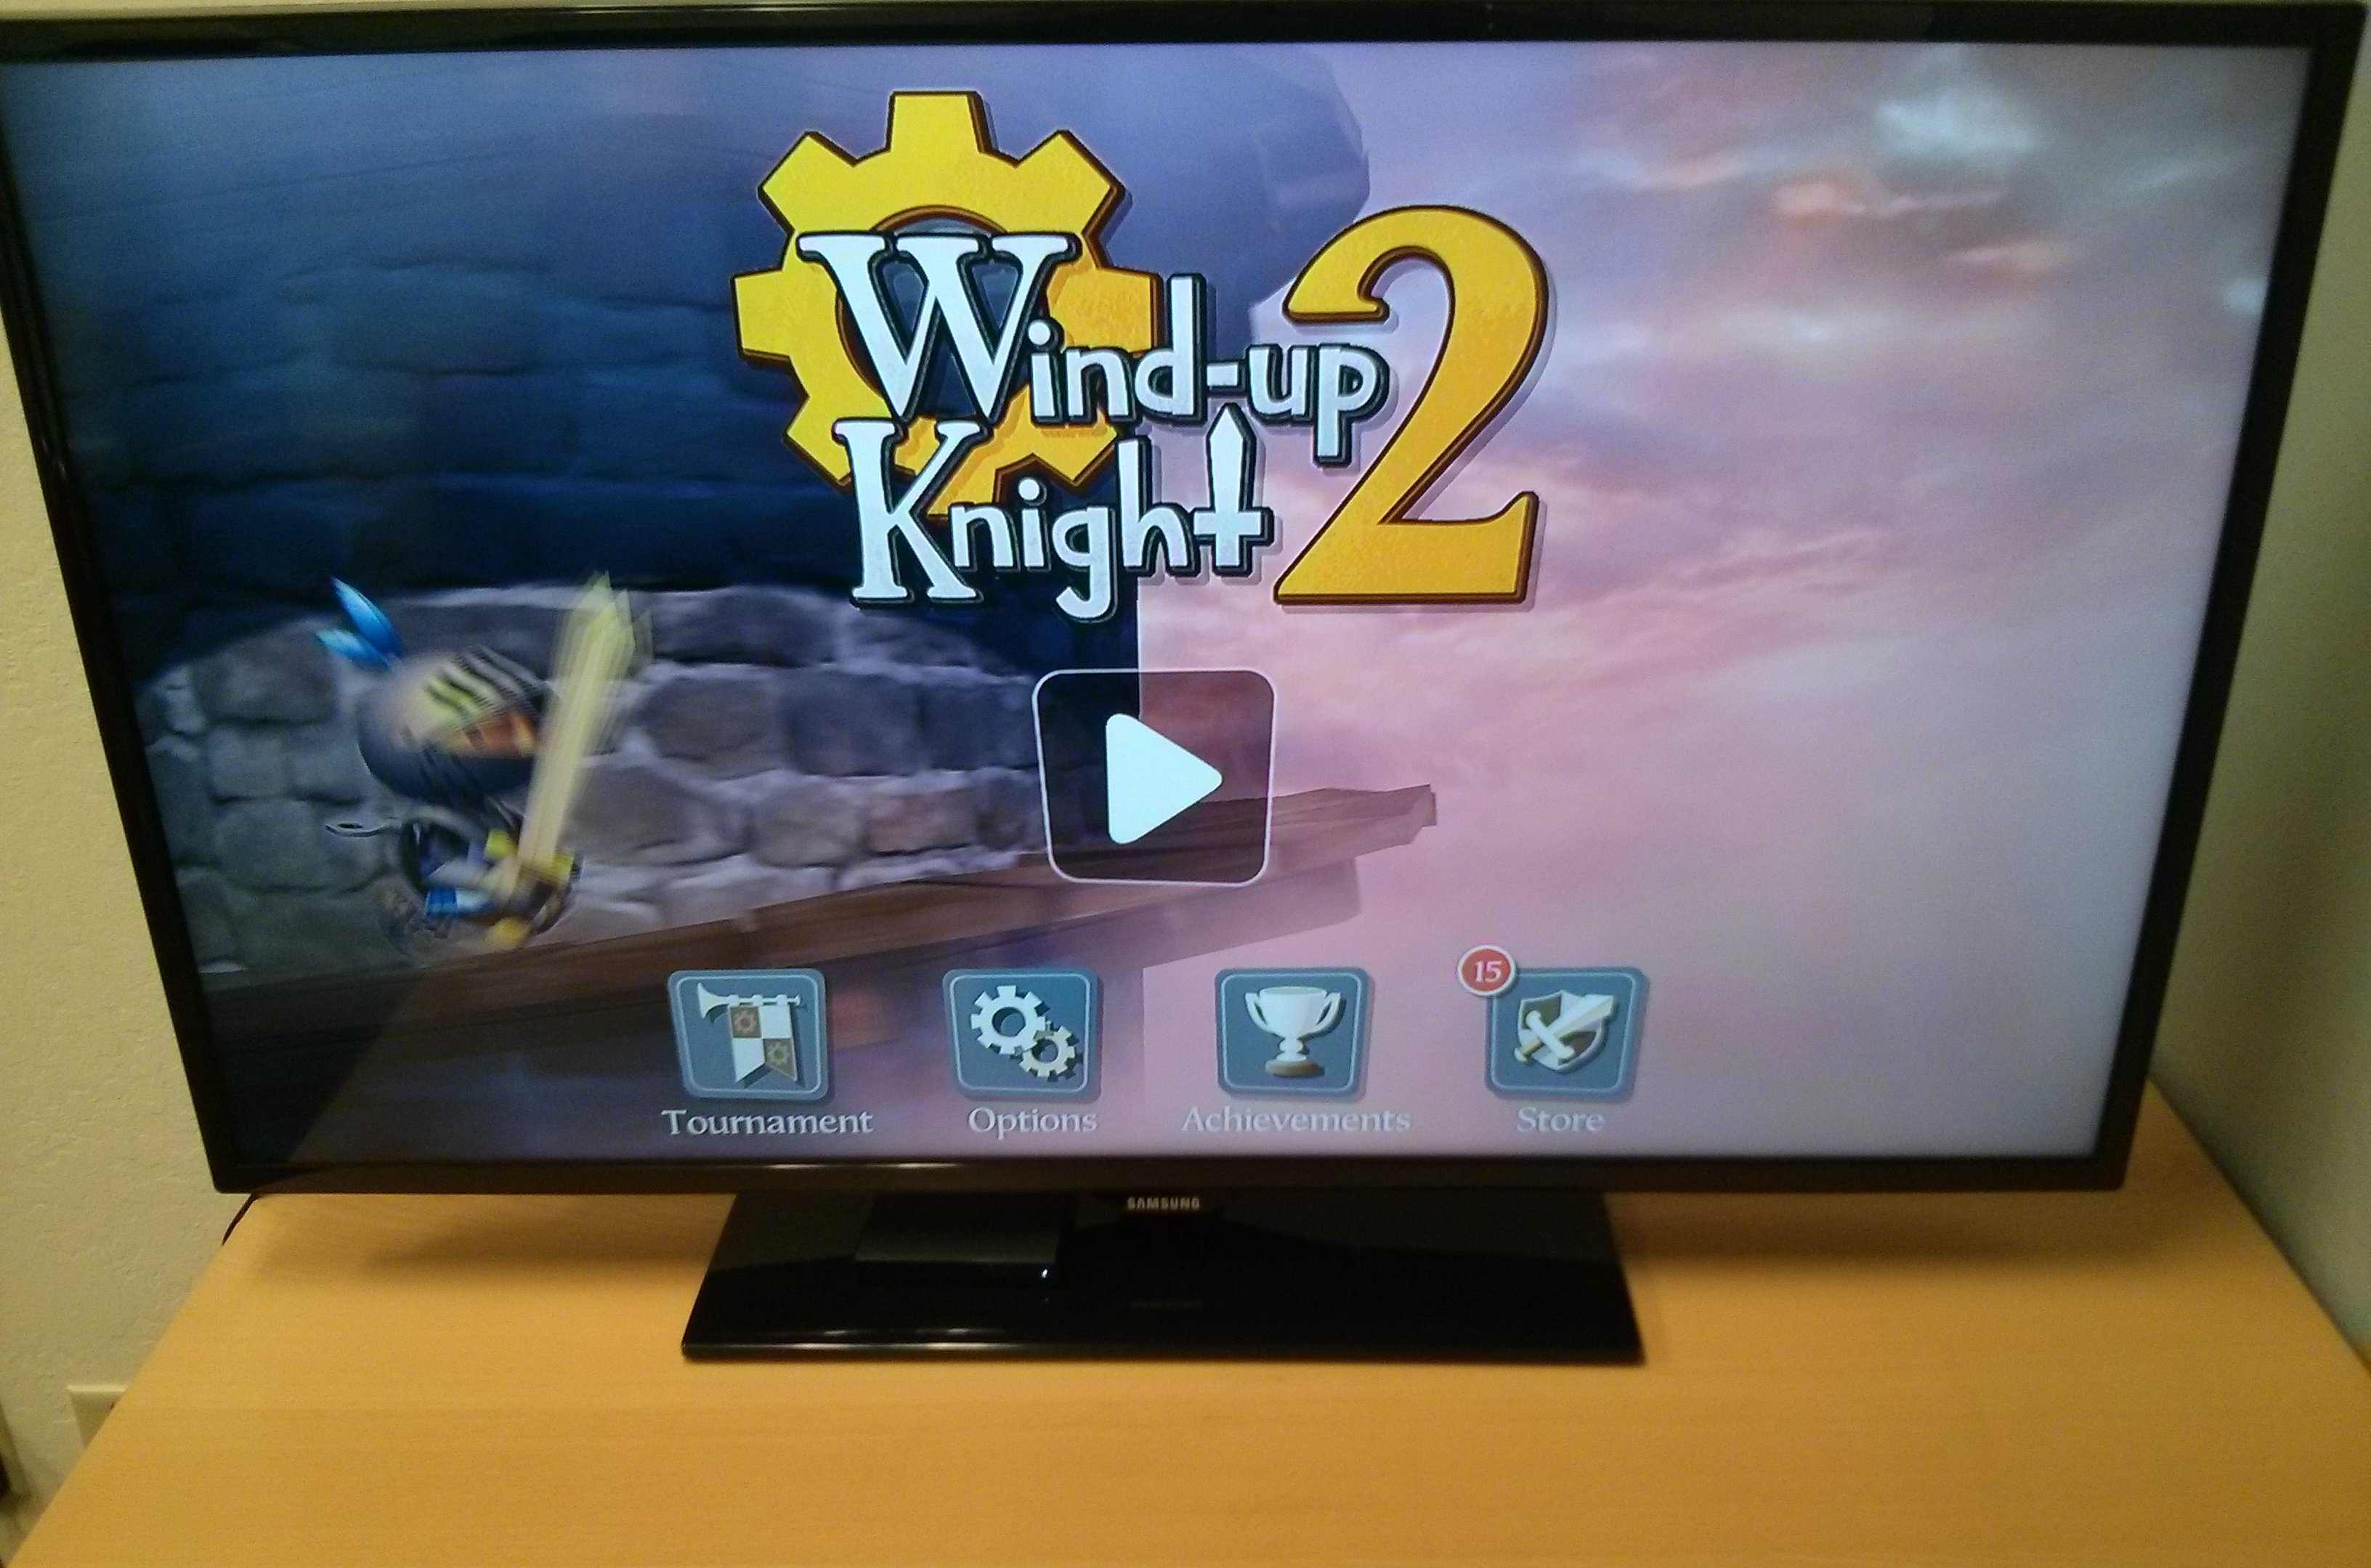 Wind-up Knight 2 is pretty flippin' sweet on a TV.